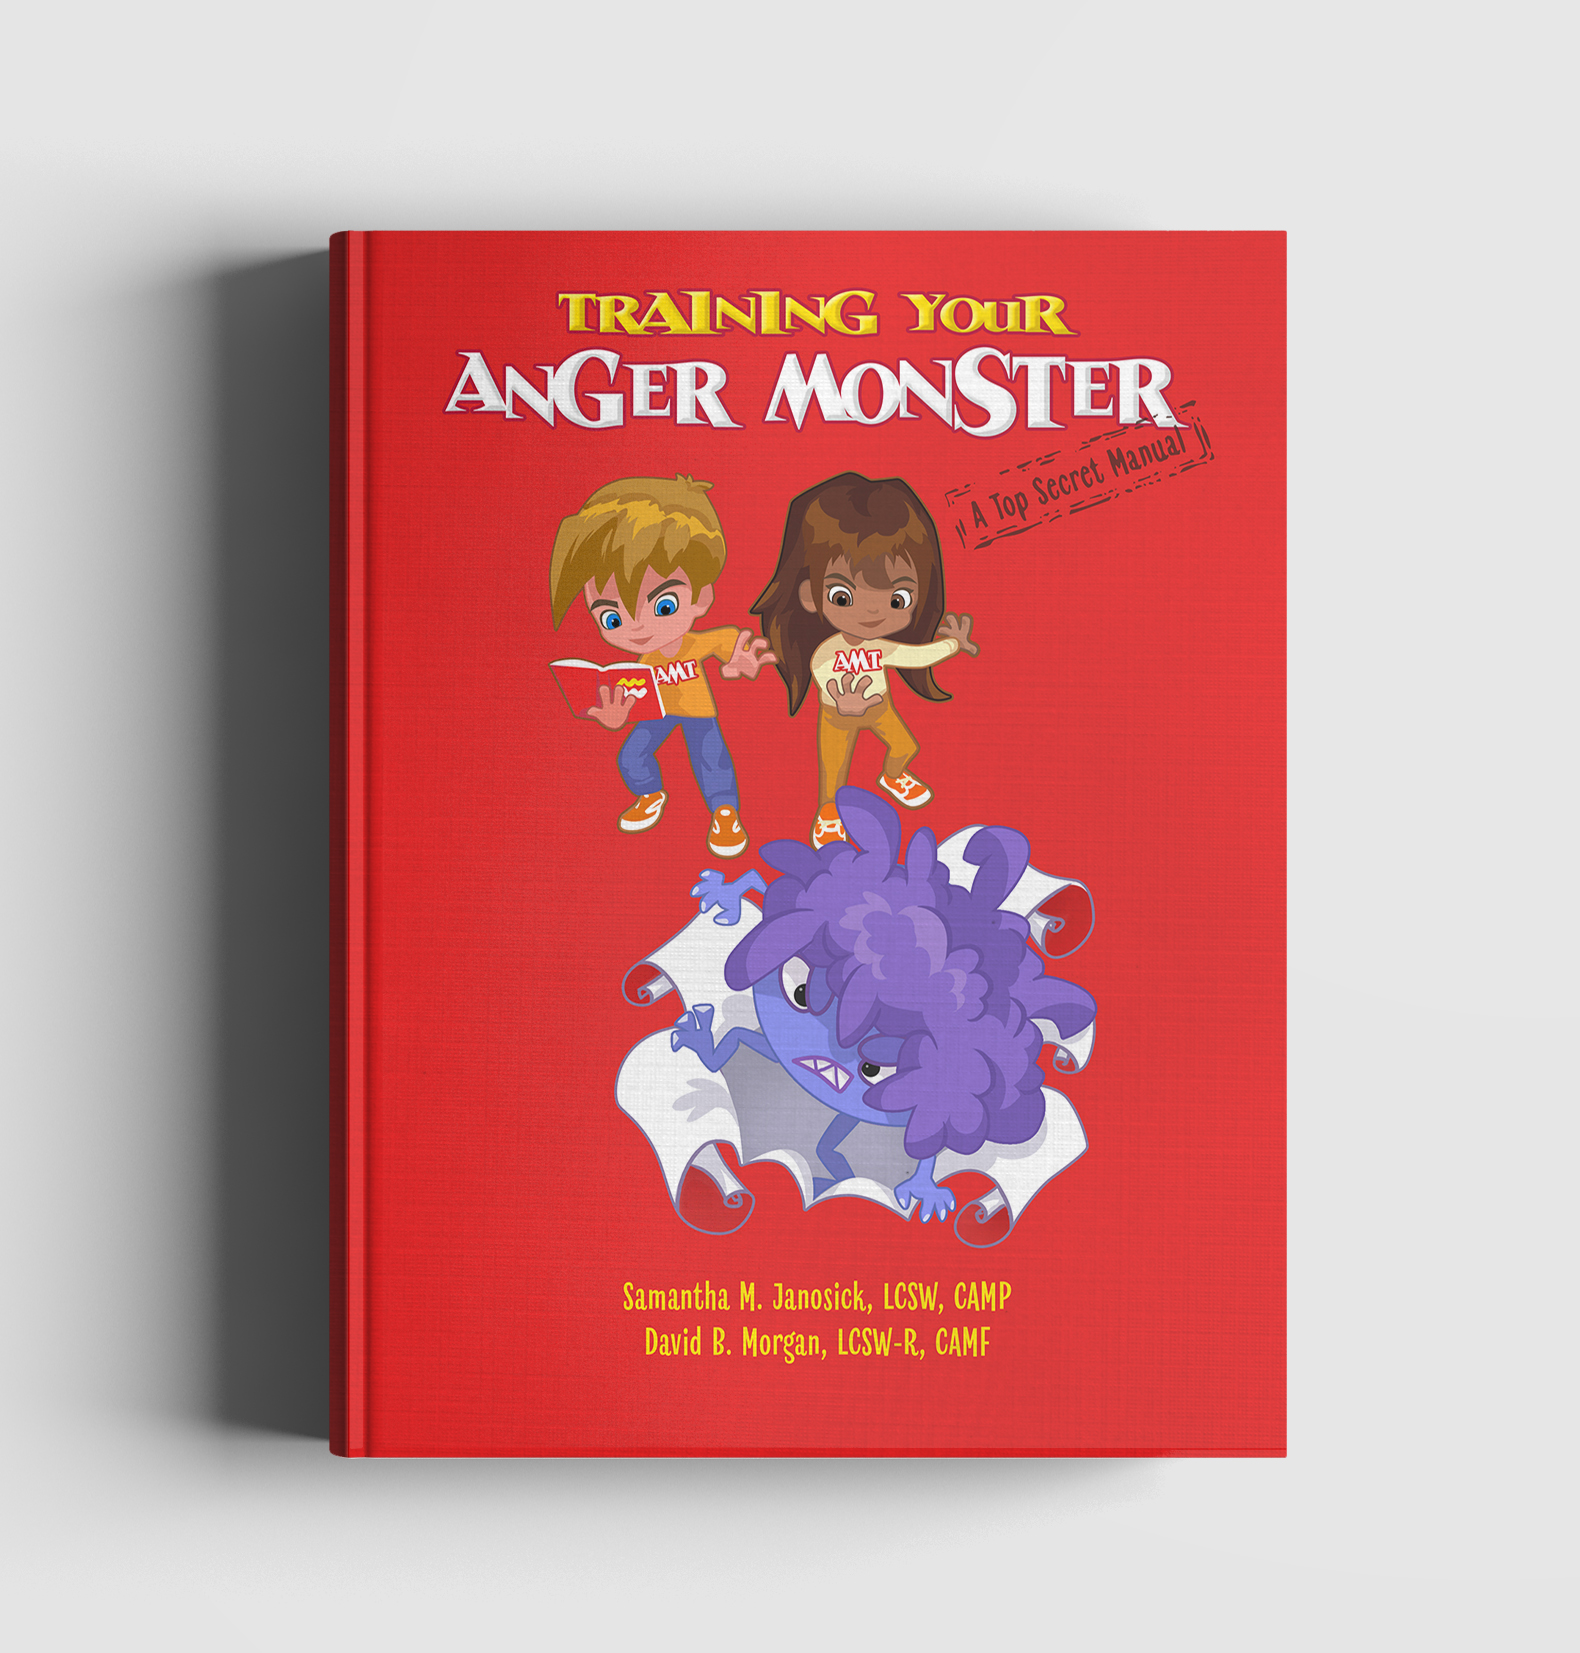 anger monster book mockup - Home